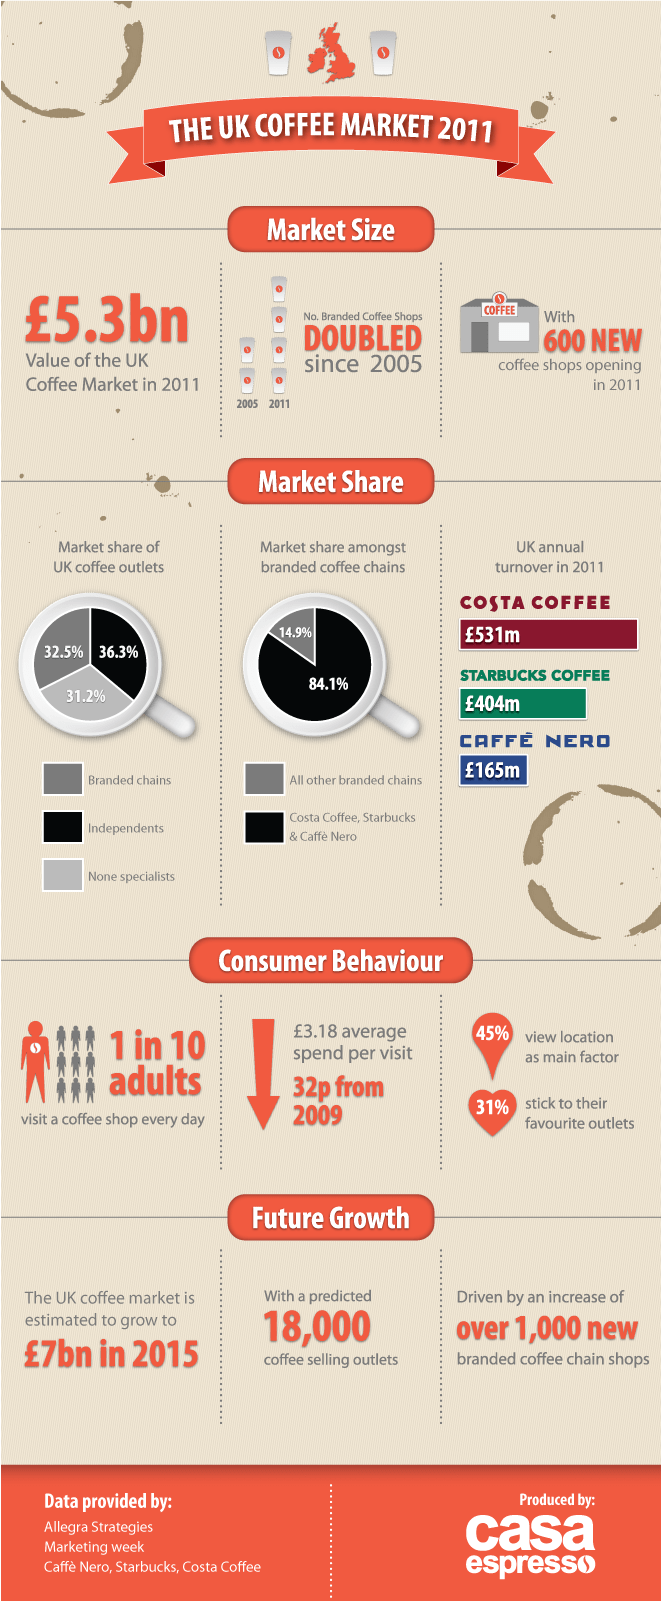 The UK Coffee Market